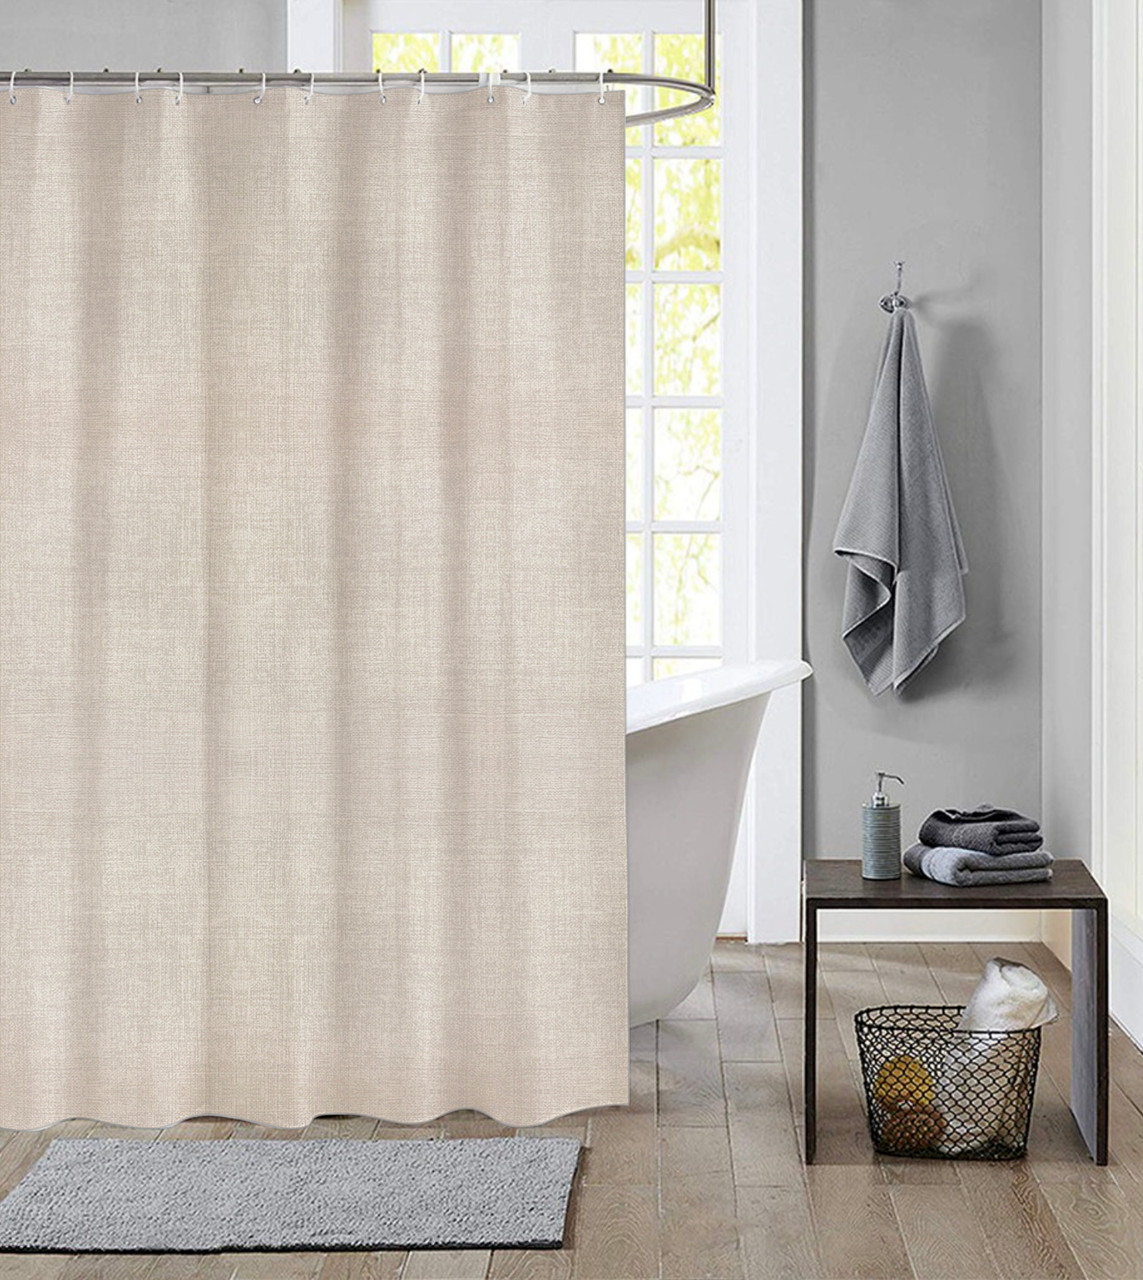 extra long shower curtain 72 x 78 inch dutch house polyester fabric simply linen